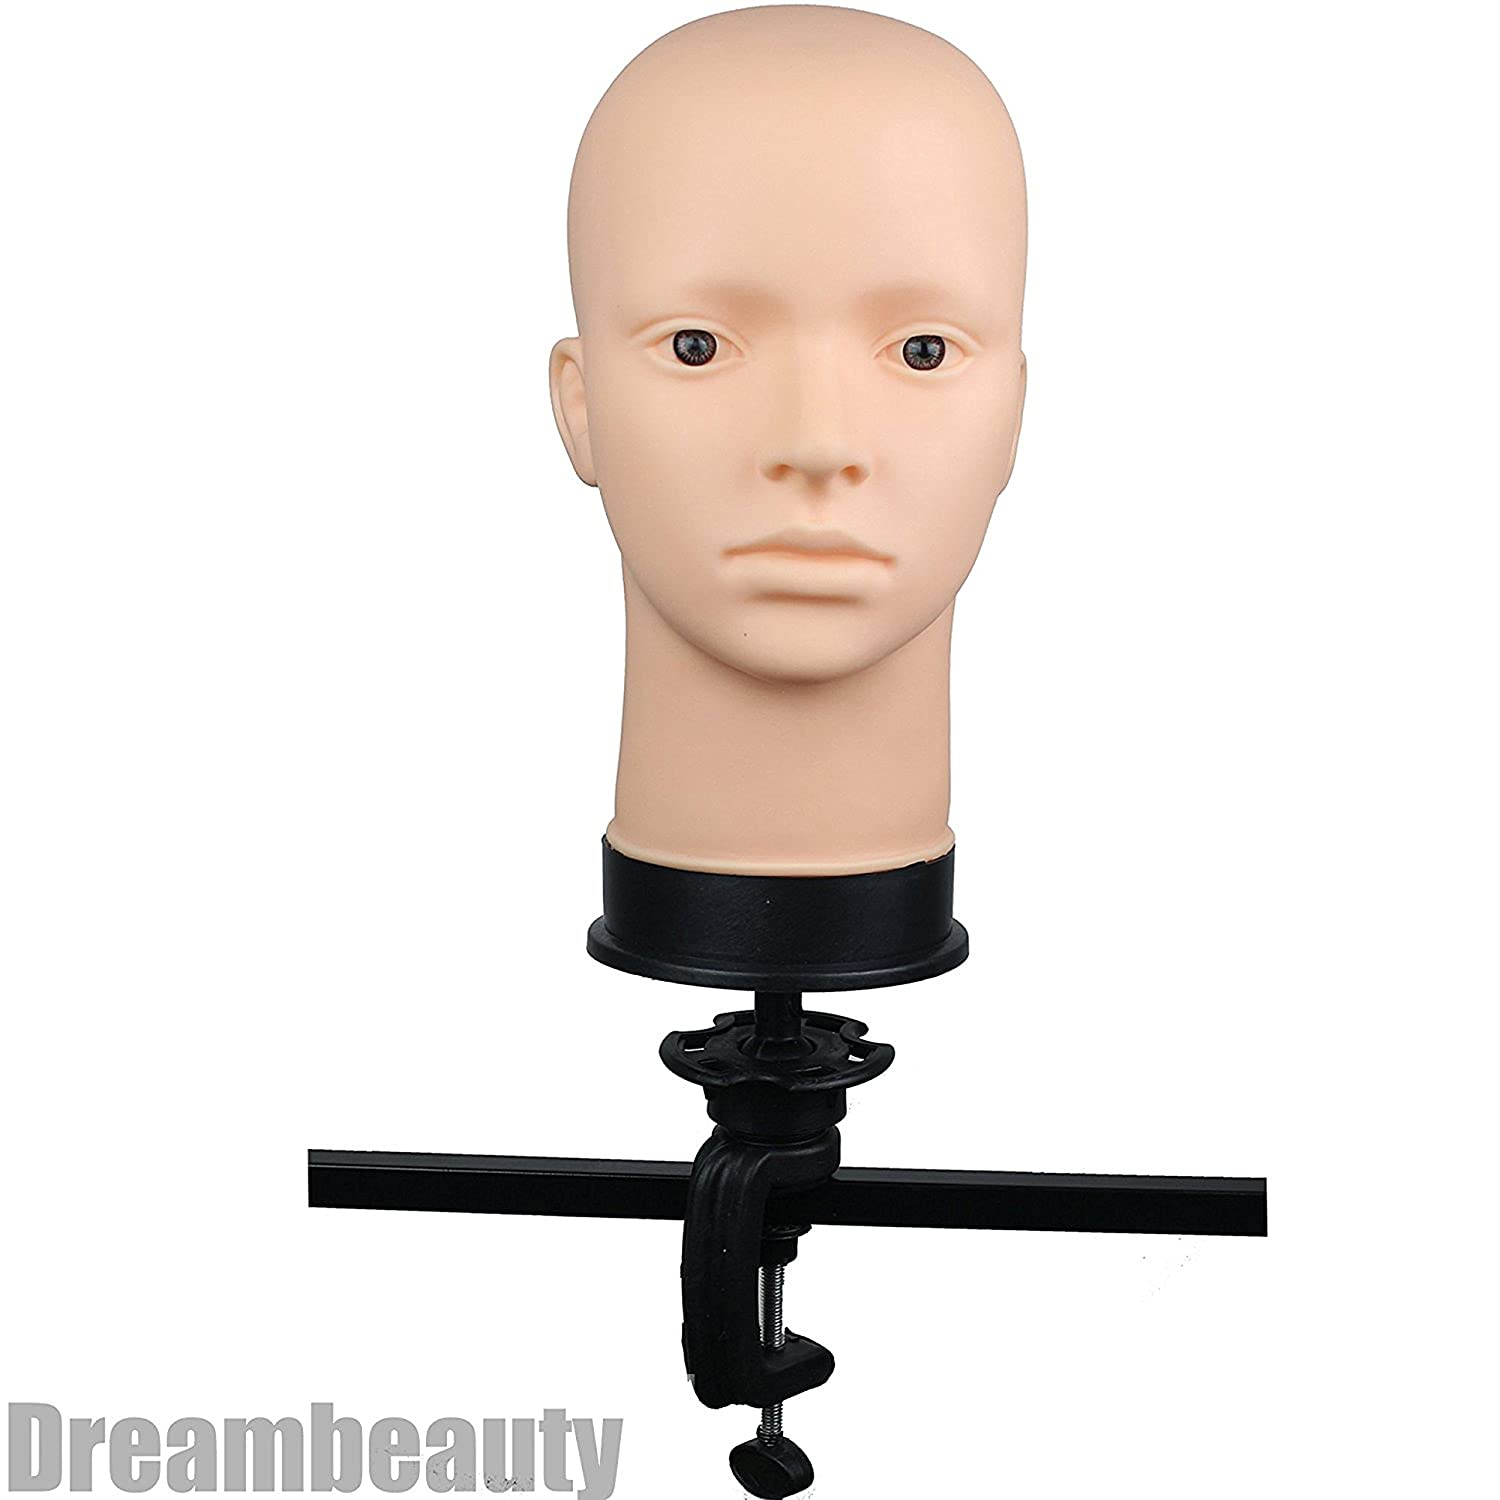 Dreambeauty Soft Viny Mannequin Head for Make Up and Massage and Wig Making (1pc Mannequin Head+ 1pc Clamp Holder) Qingdao Feiyang Hair Co. Ltd